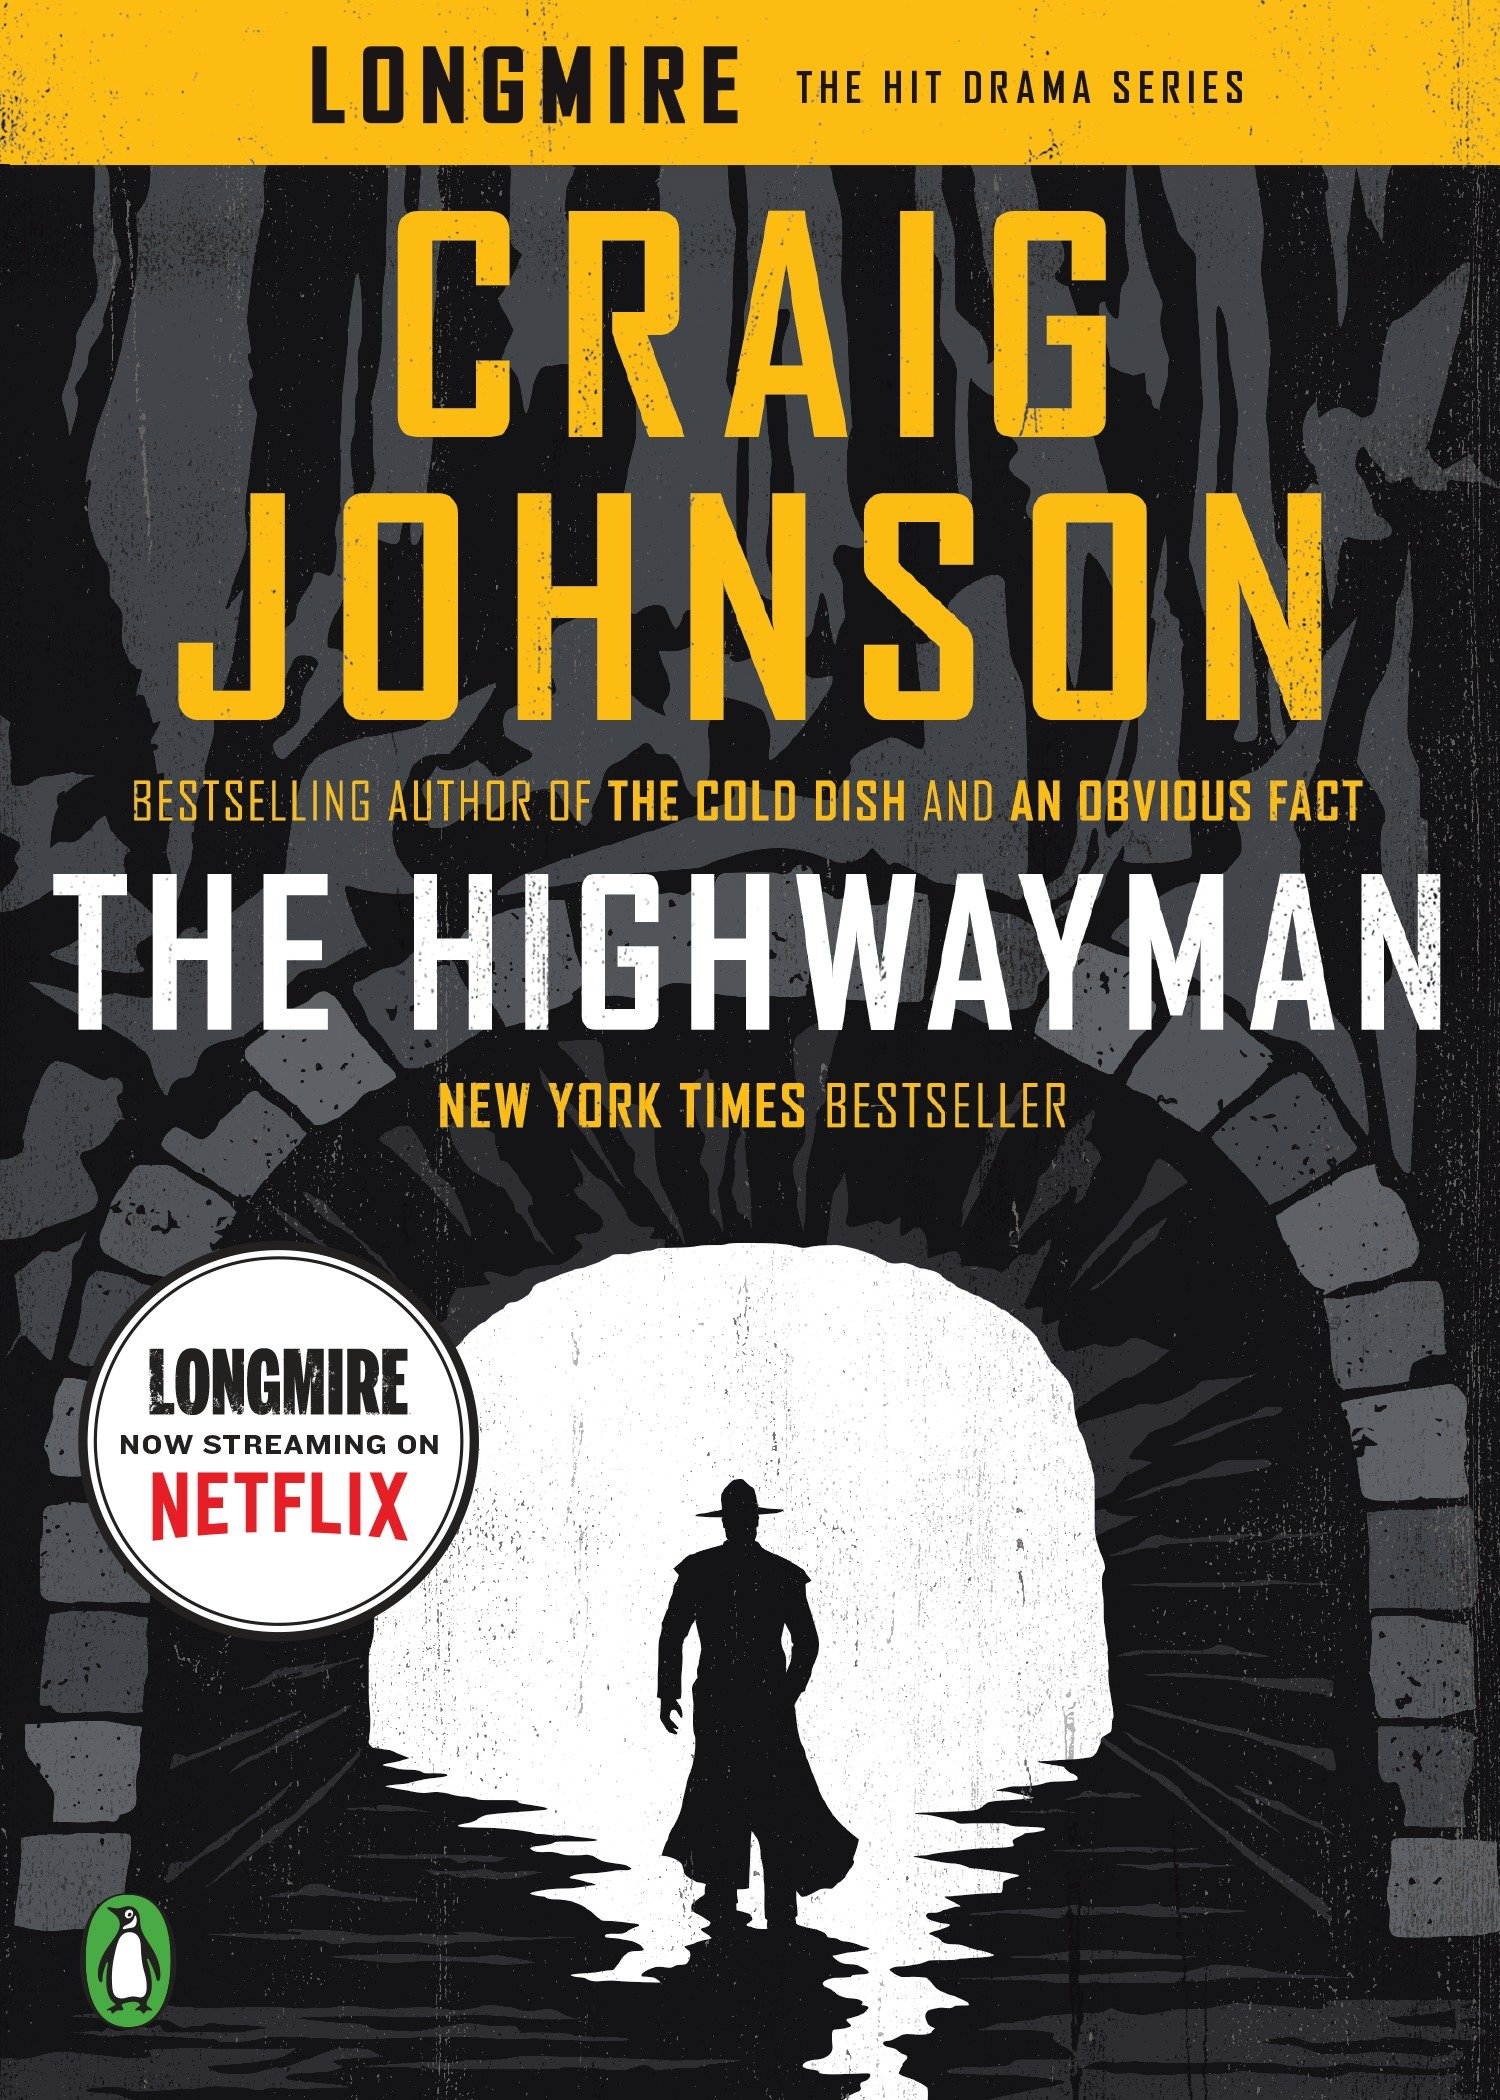 The Highwayman A Longmire Story